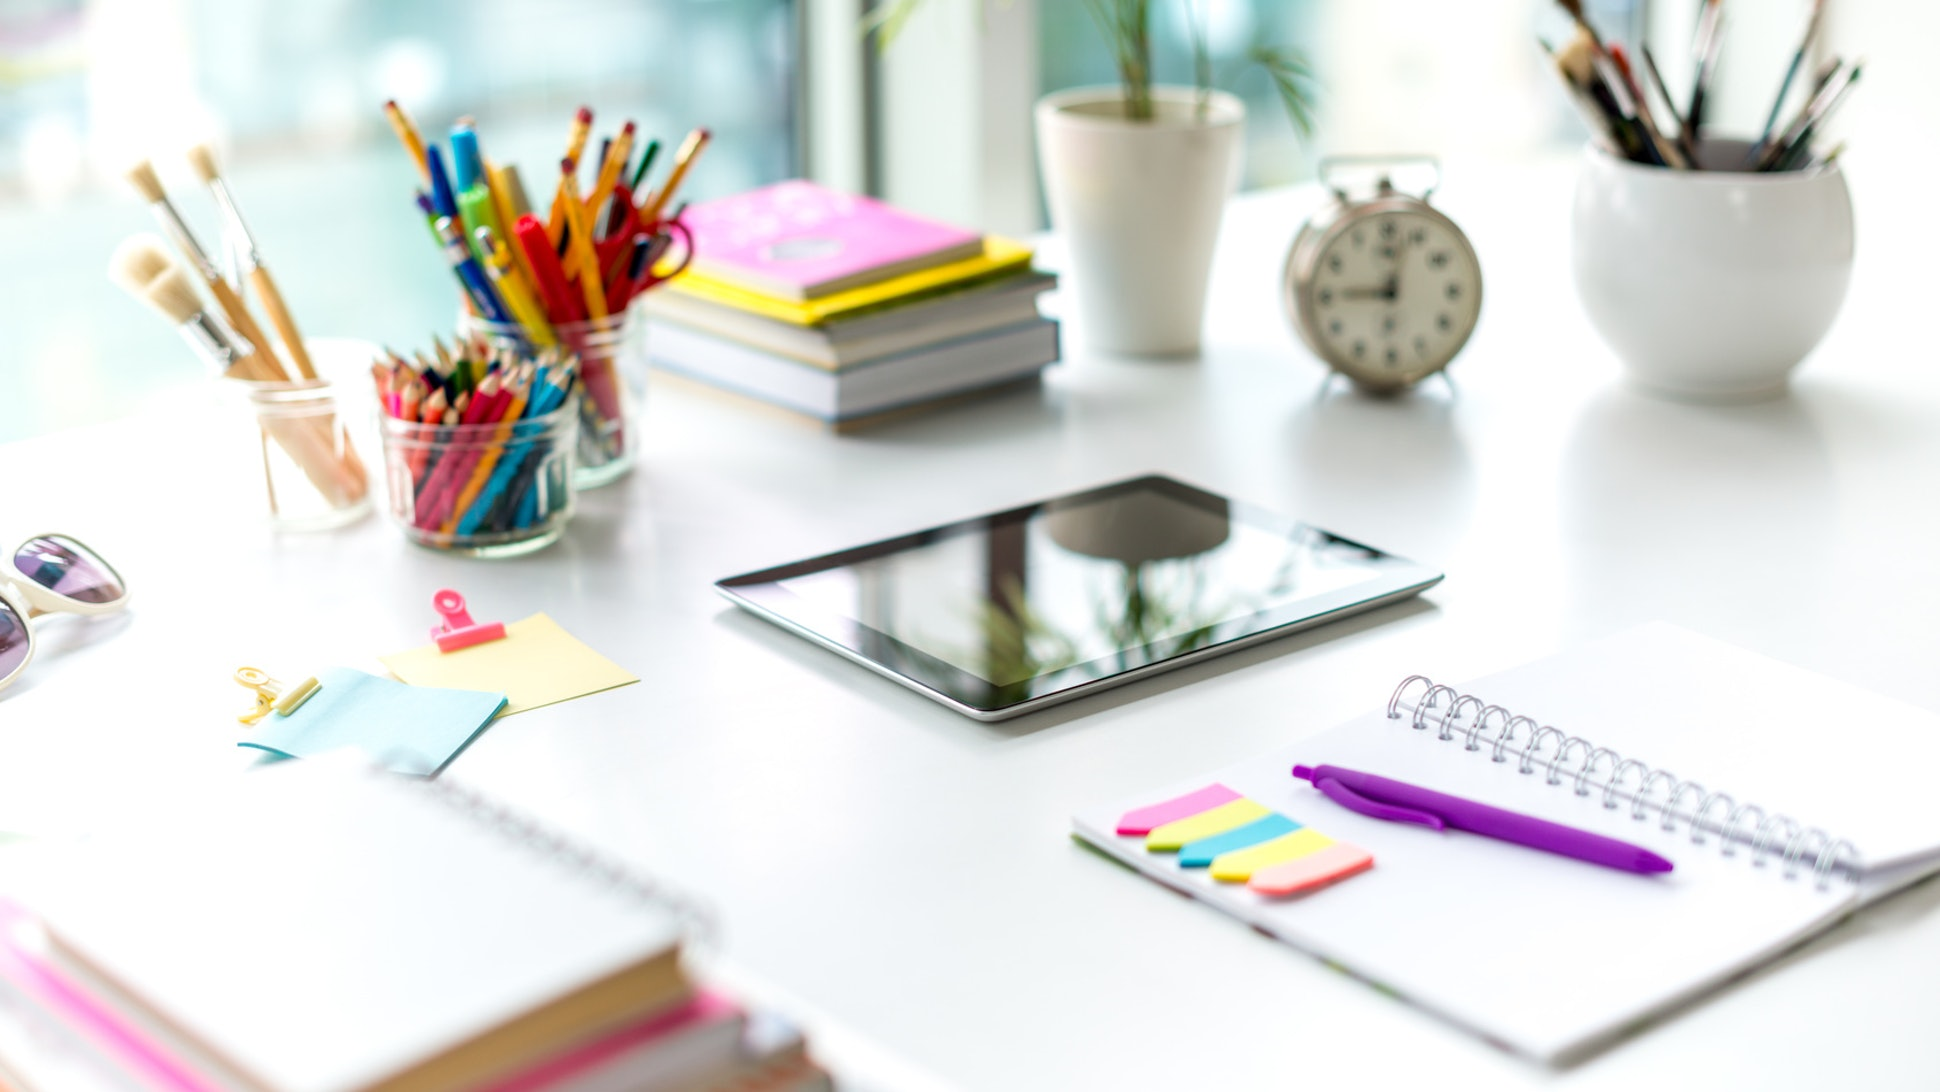 16 Little Things To Make Your Desk More Pleasant